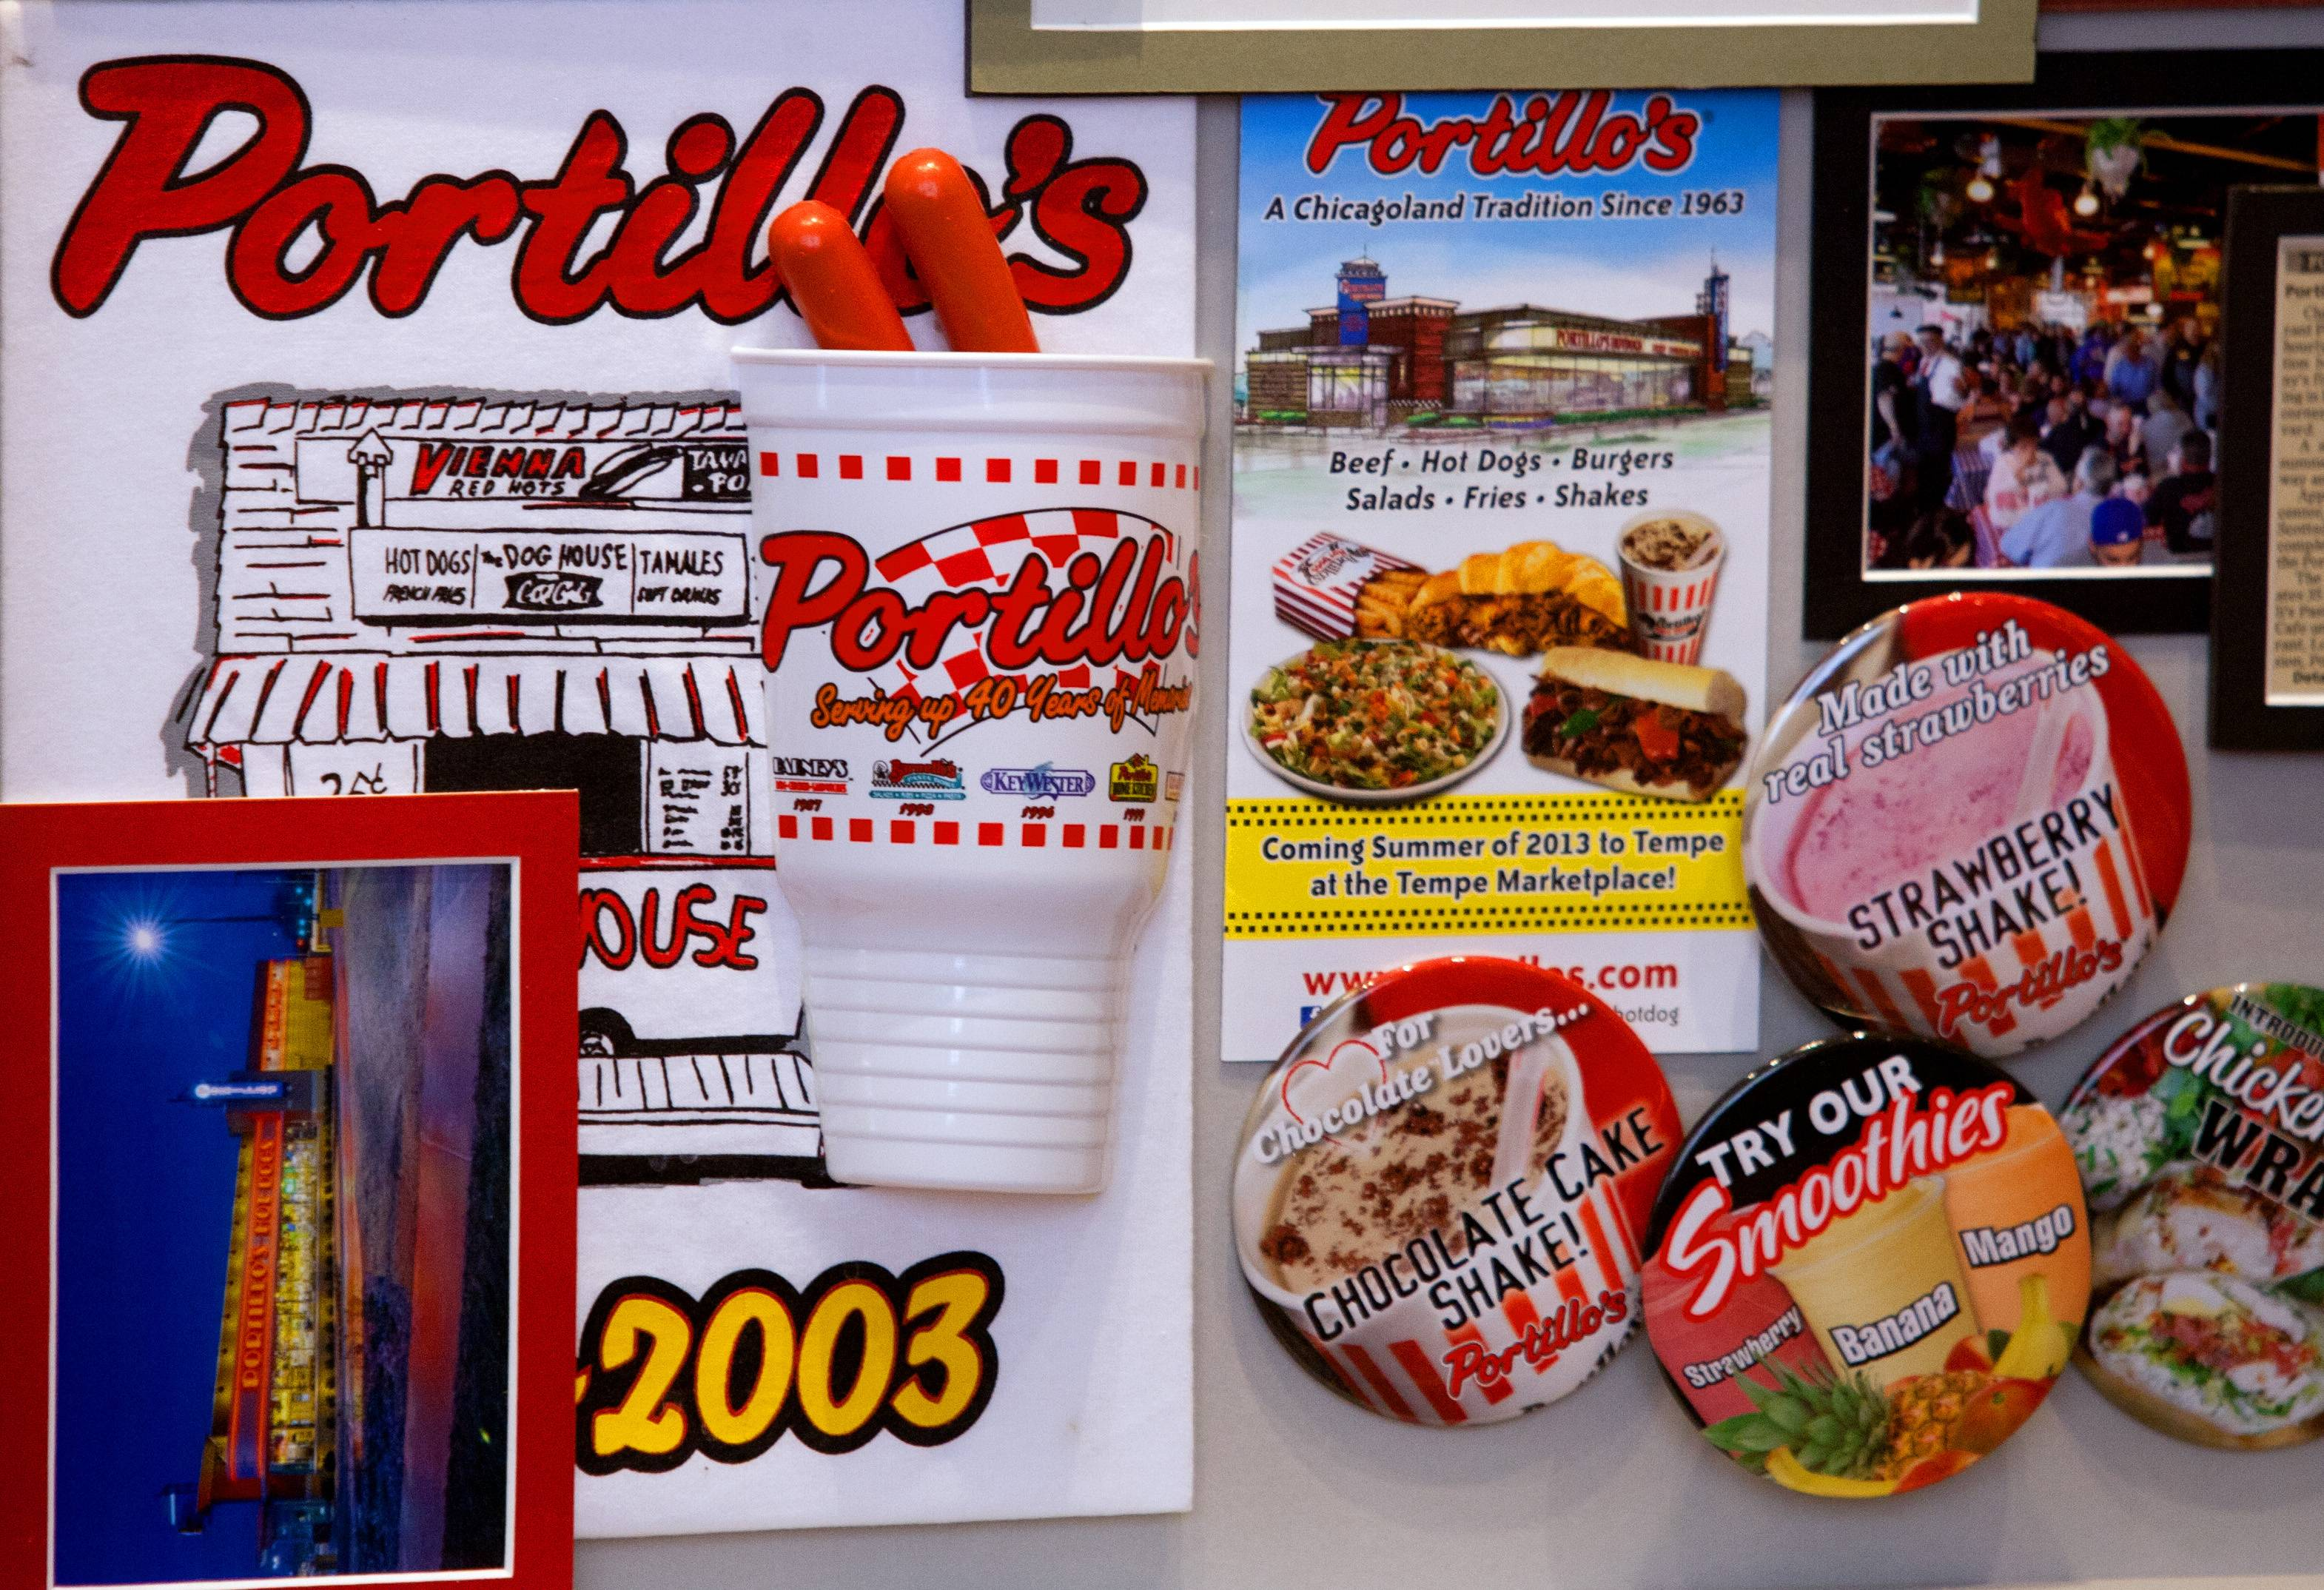 Portillo's plans to open in Normal